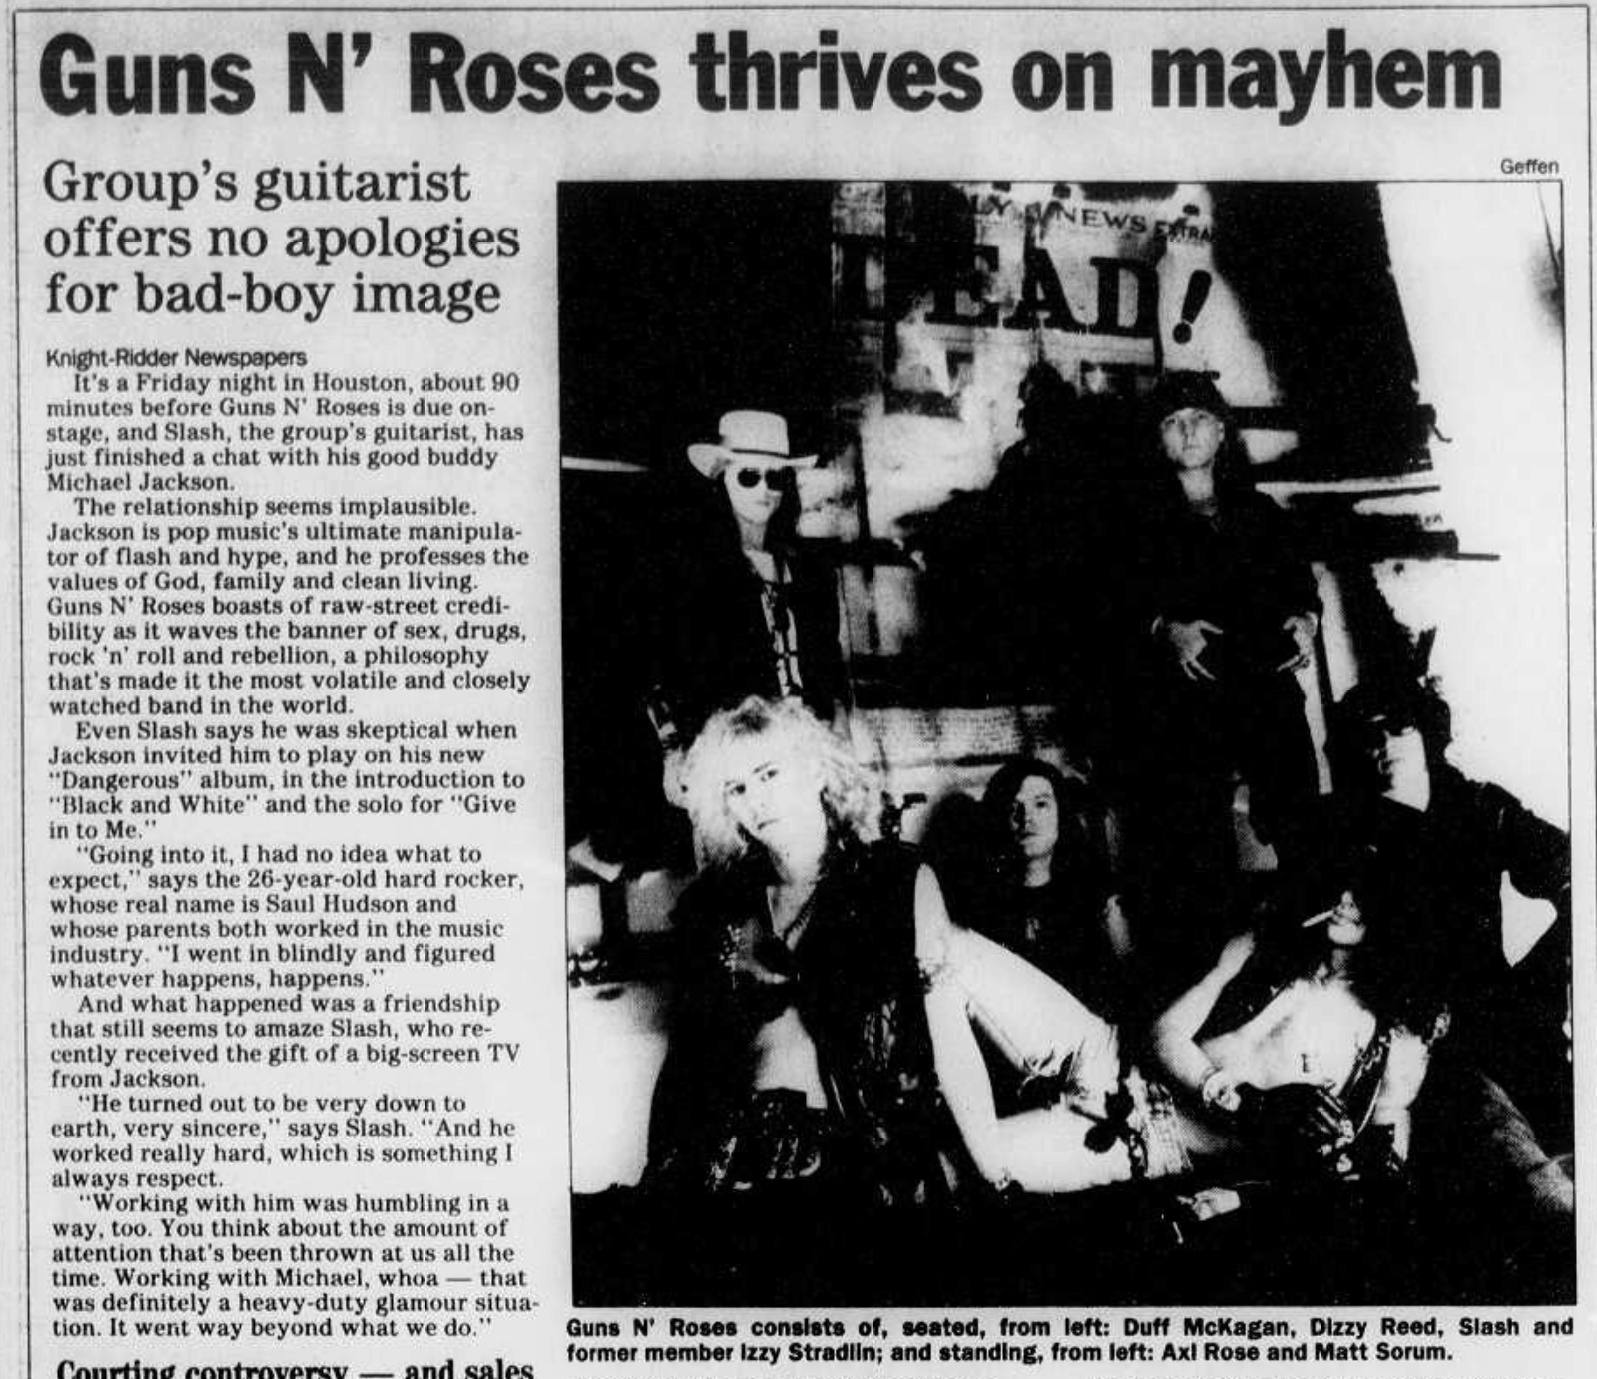 1992.04.12 - Detroit Free Press - Guns N' Roses Guitarist Cuts Right to the Heart (Slash) Colora10